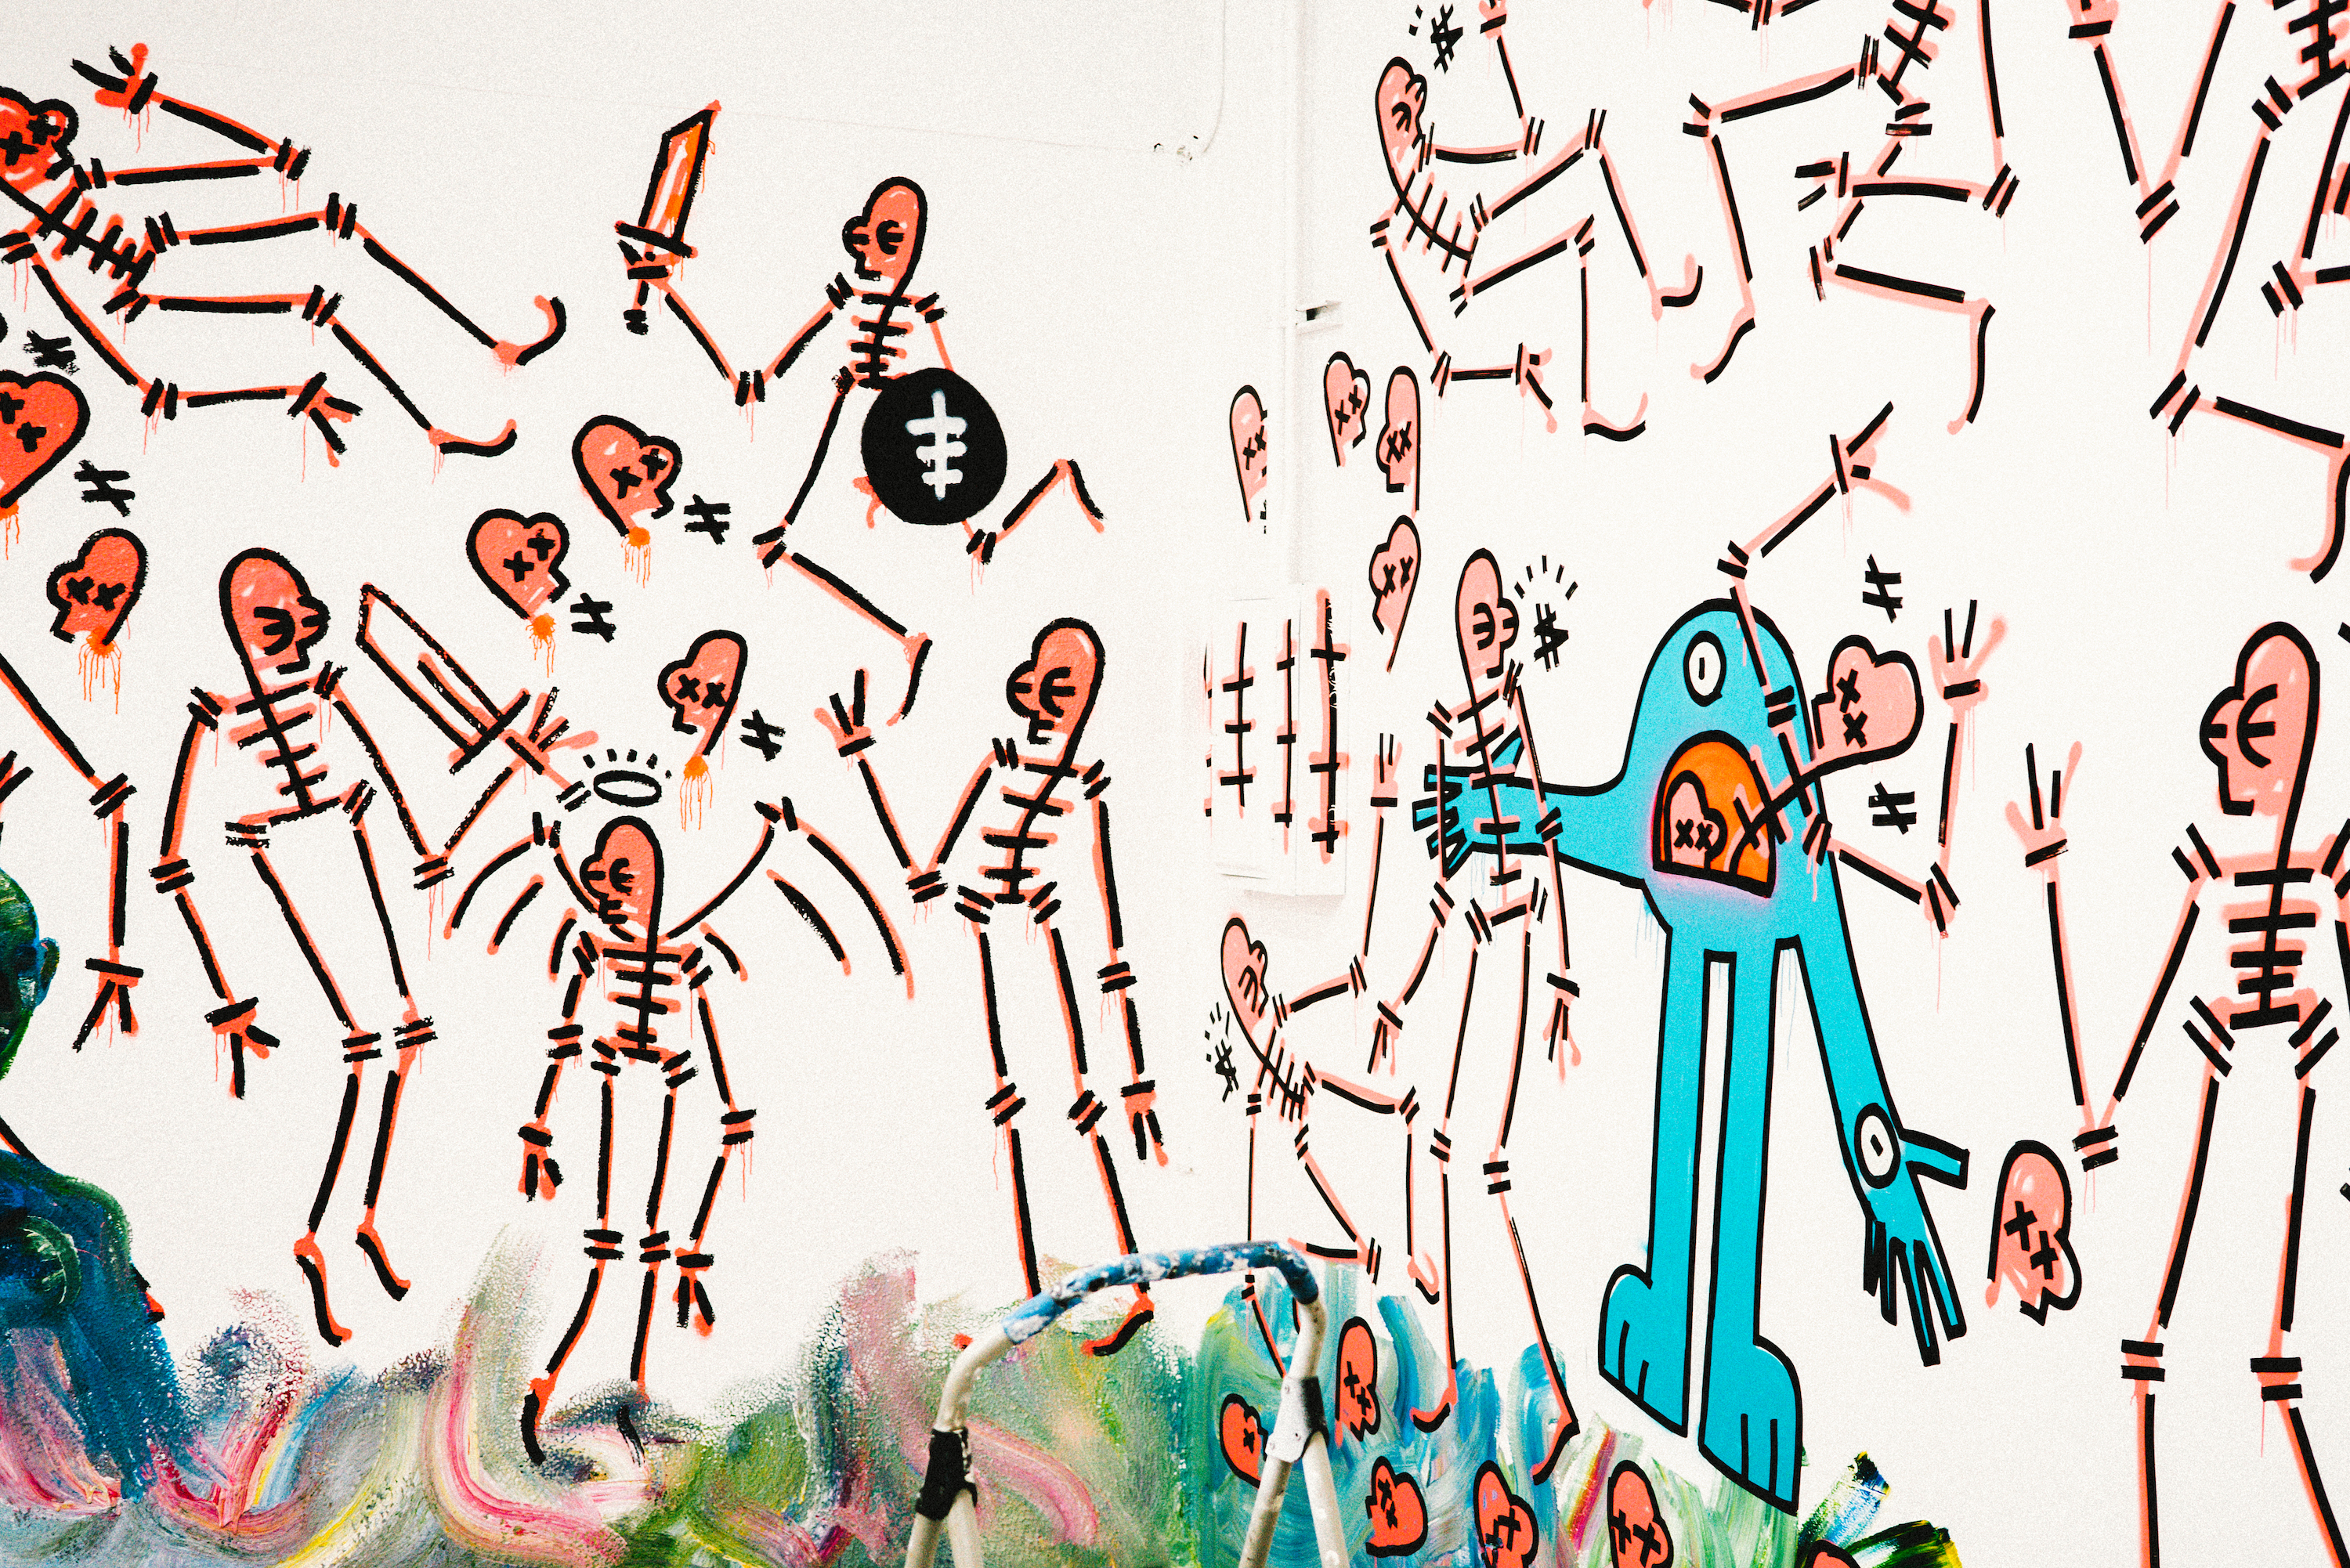 Gianni Lee Is The Modern Day Basquiat Painting Skeletons On